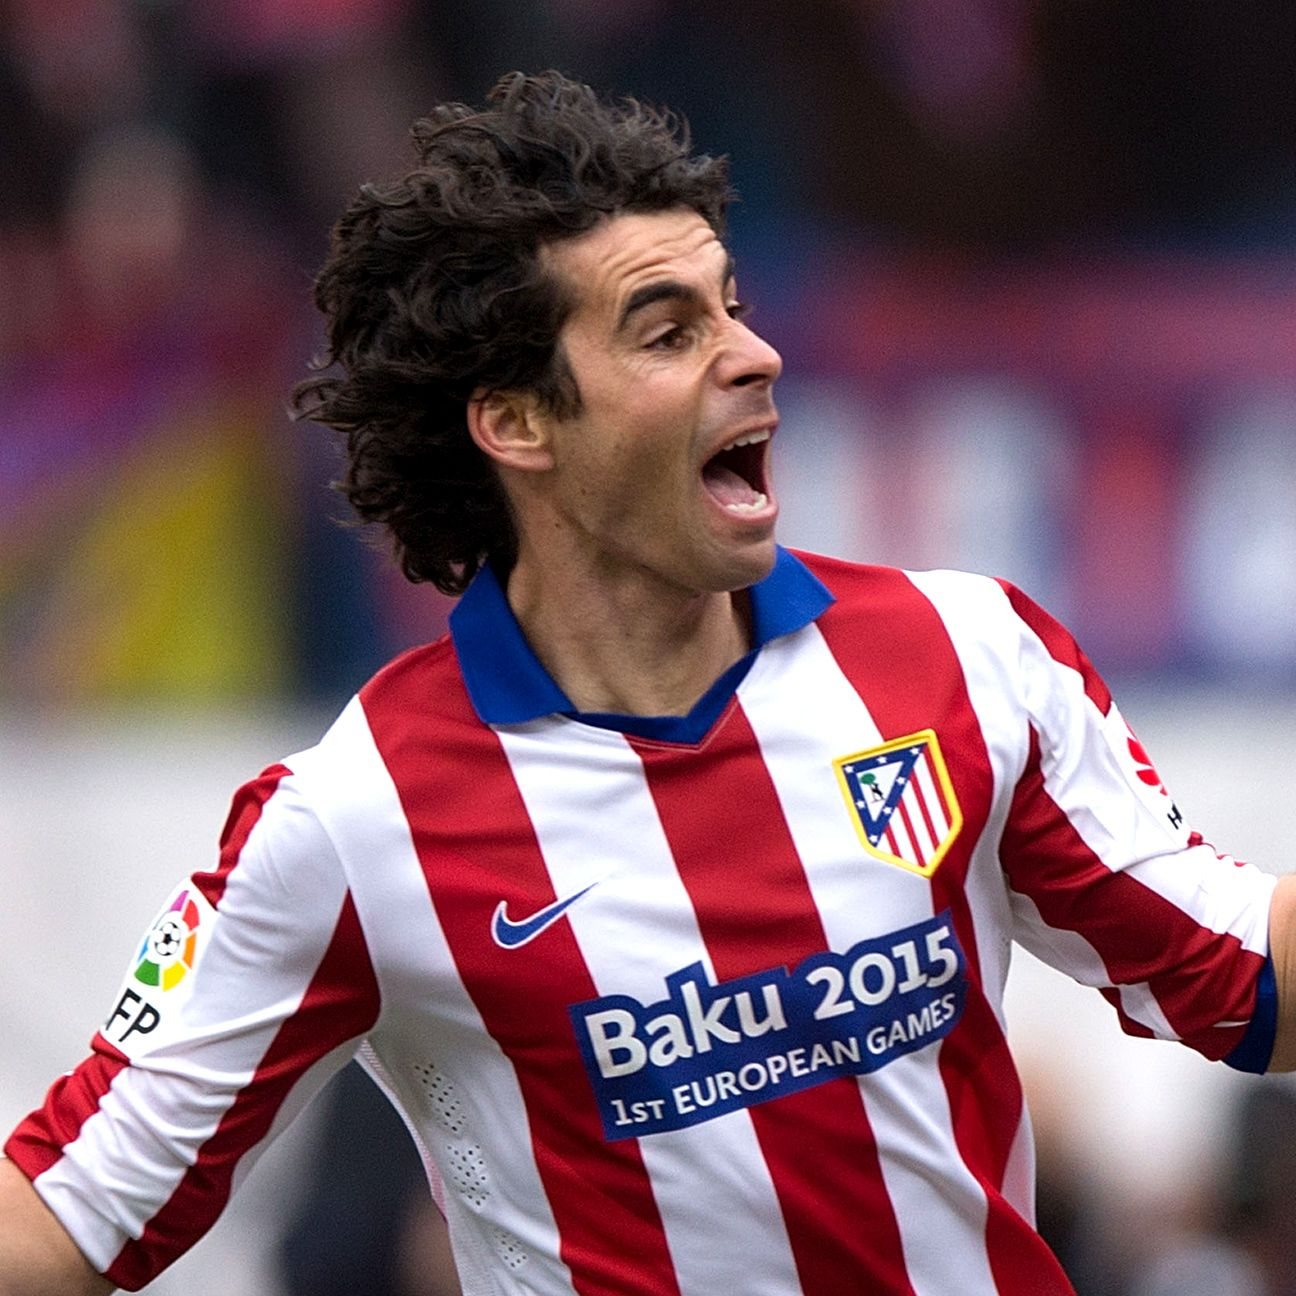 Tiago rose to the big occasion again for Atletico by scoring the opener in the 4-0 win against Real Madrid.